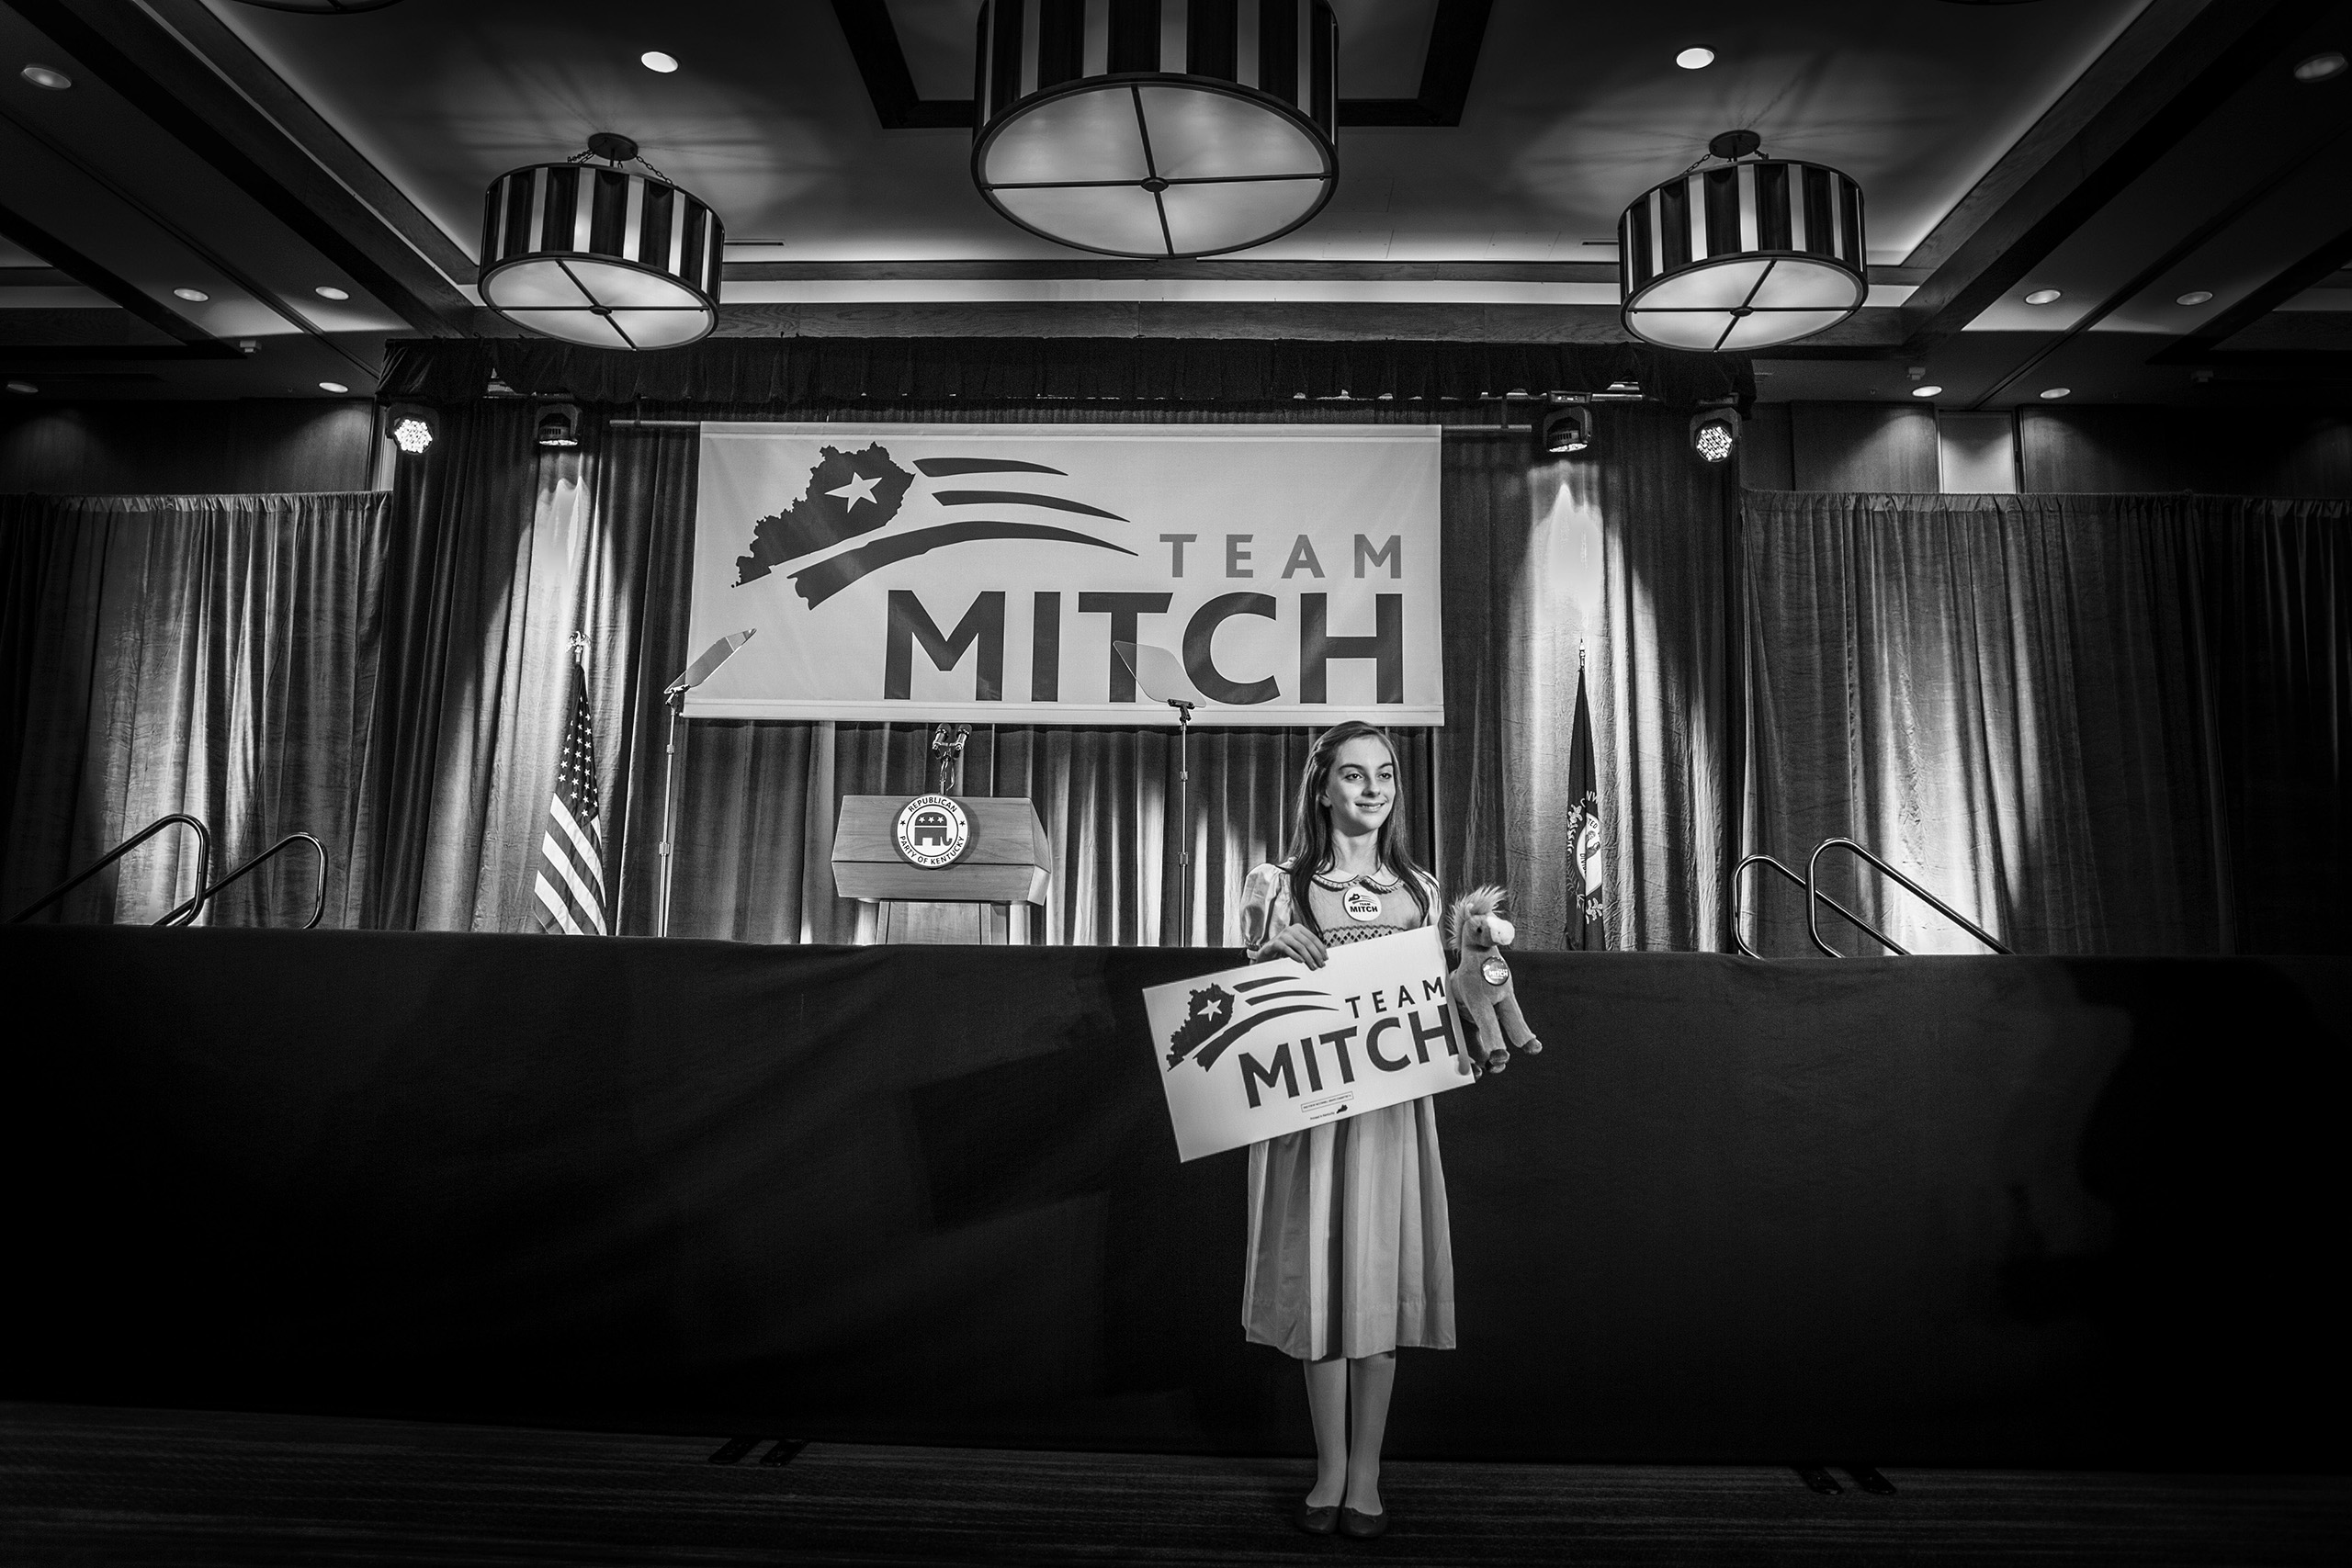 Election night in Kentucky on Nov. 4, 2014. McConnell was re-elected for a sixth term.